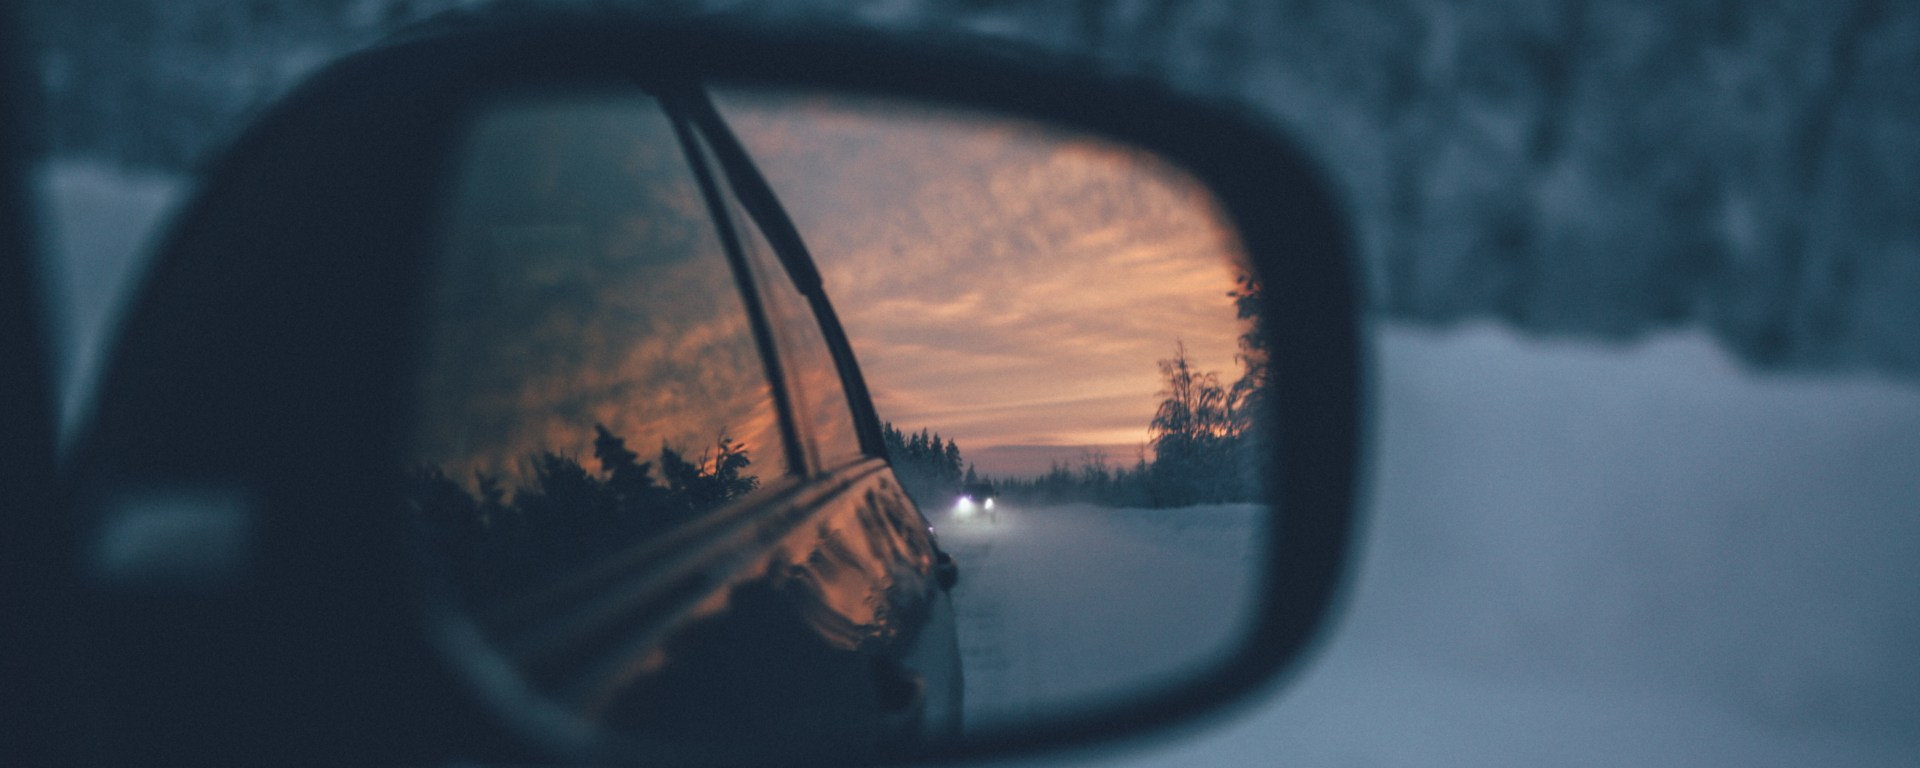 Car mirror reflecting a sunset.